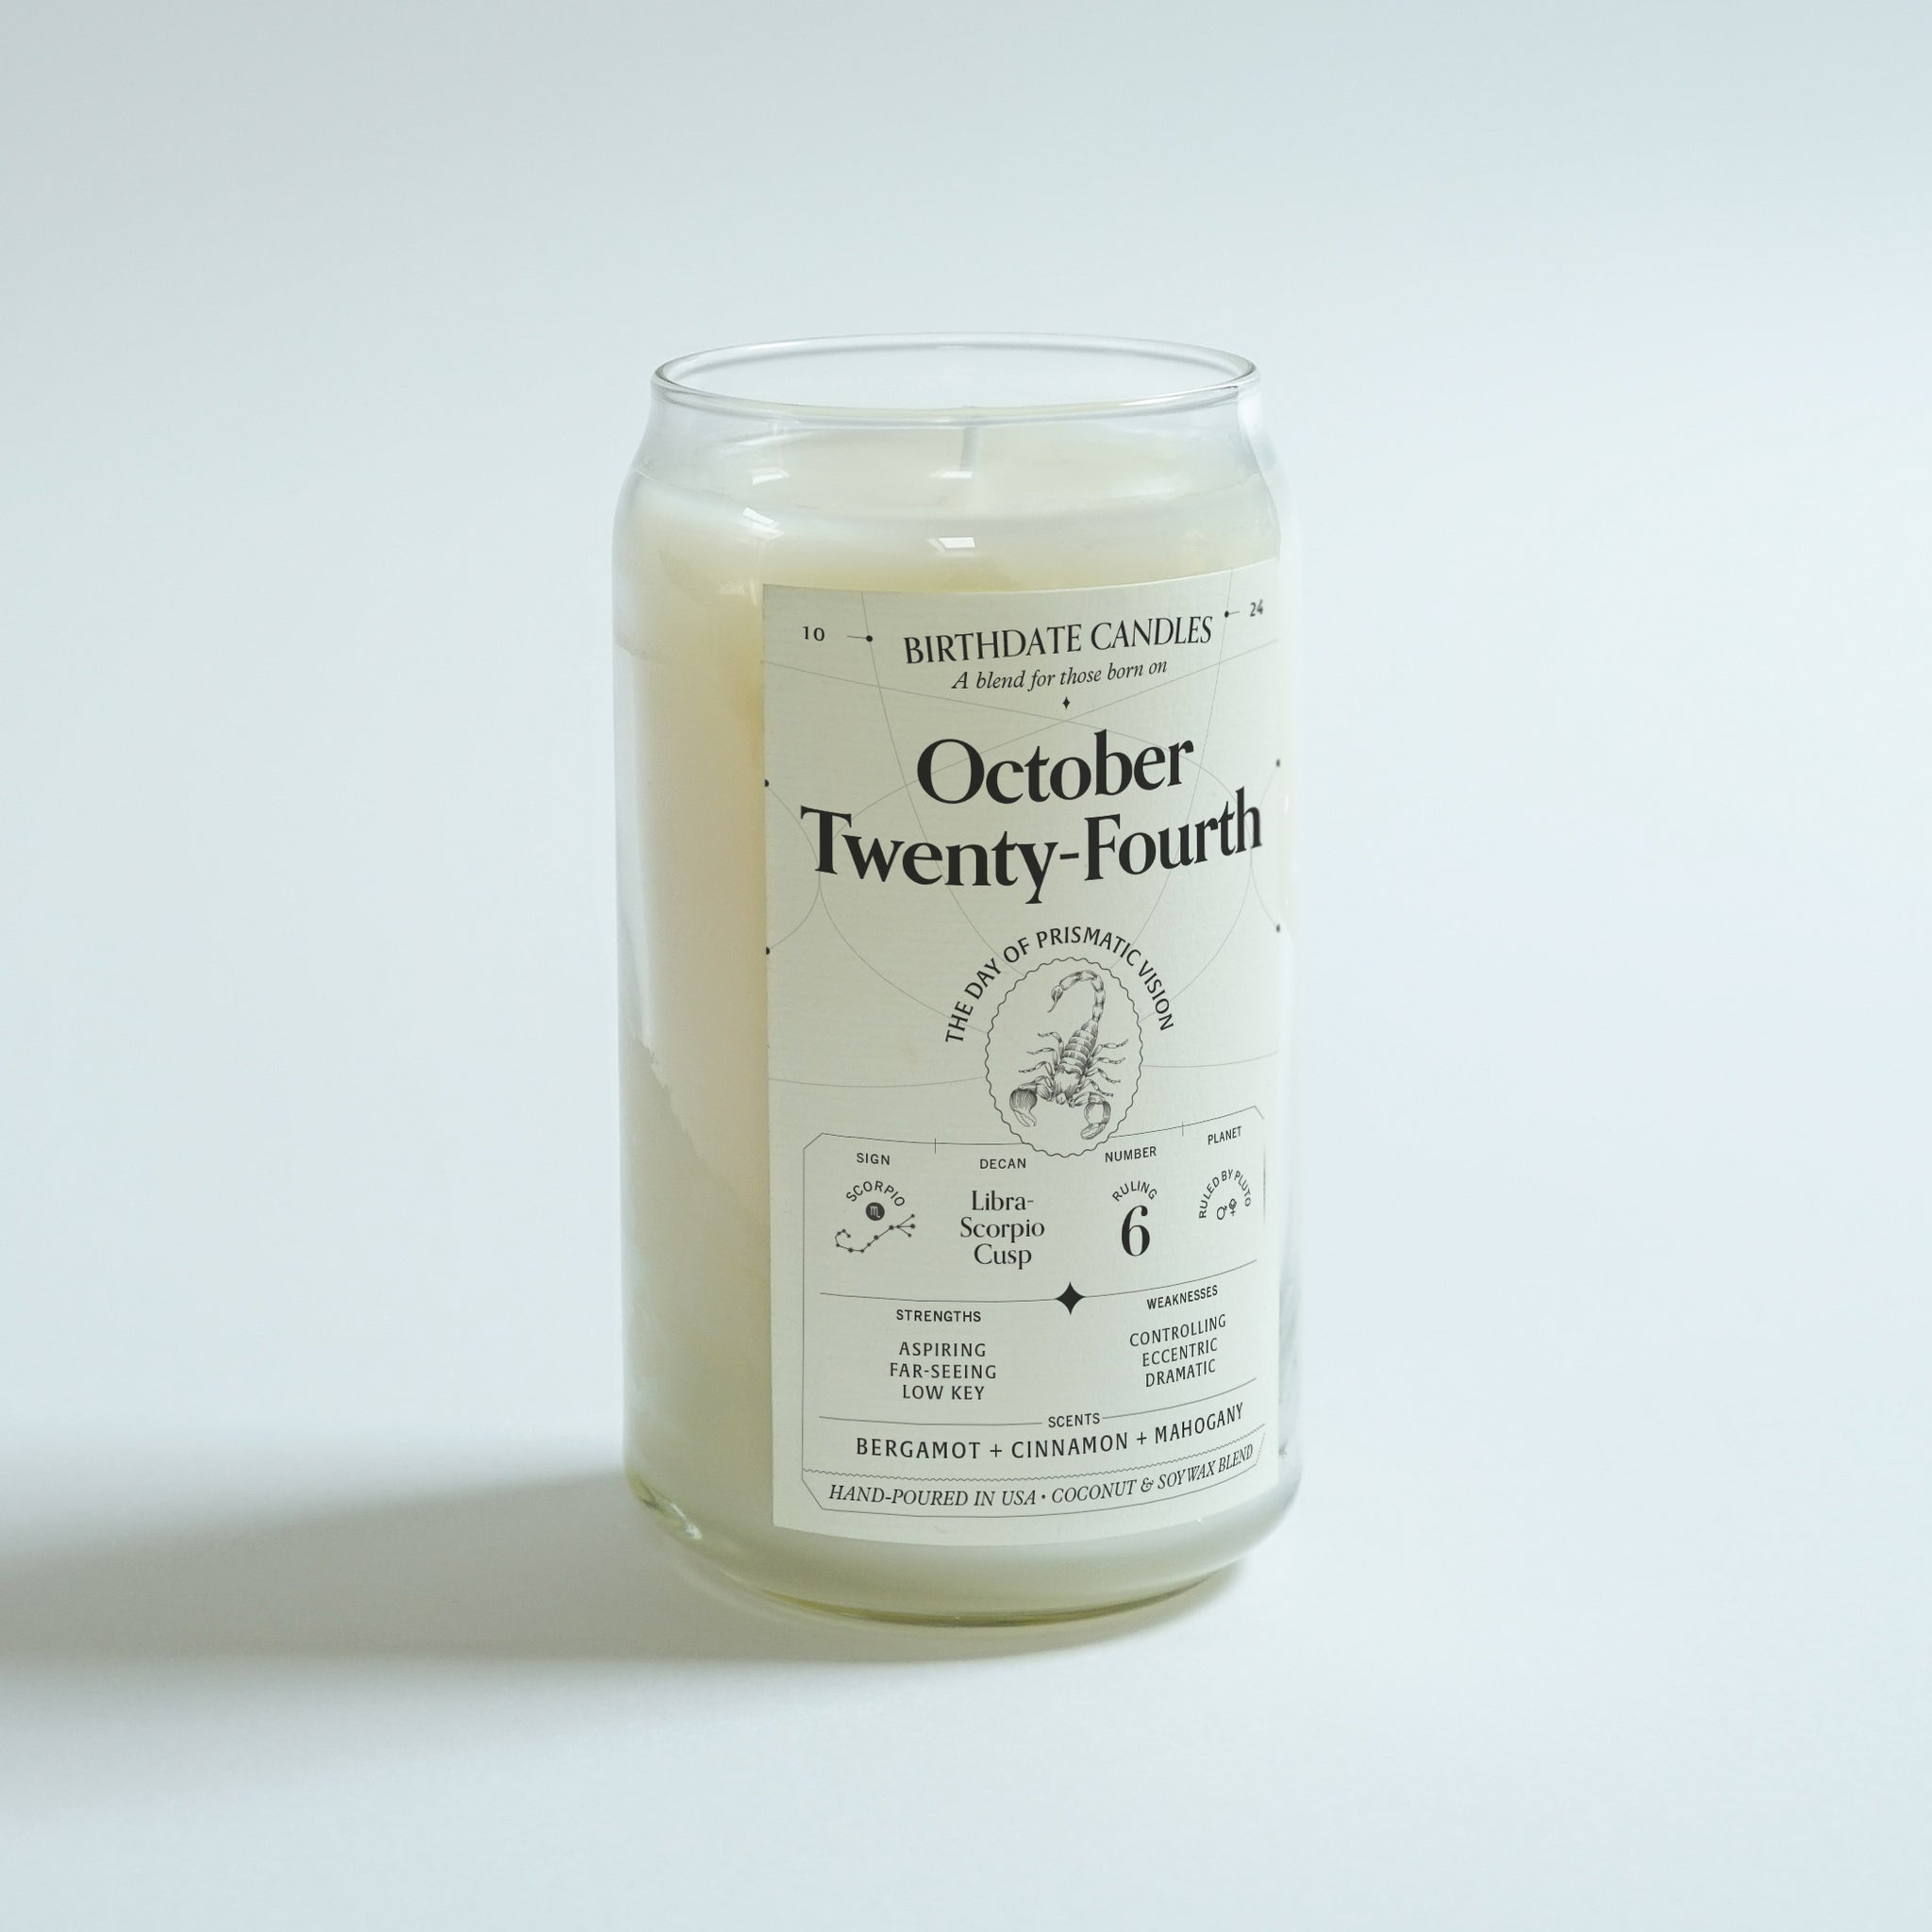 The October Twenty-Fourth Birthday Candle